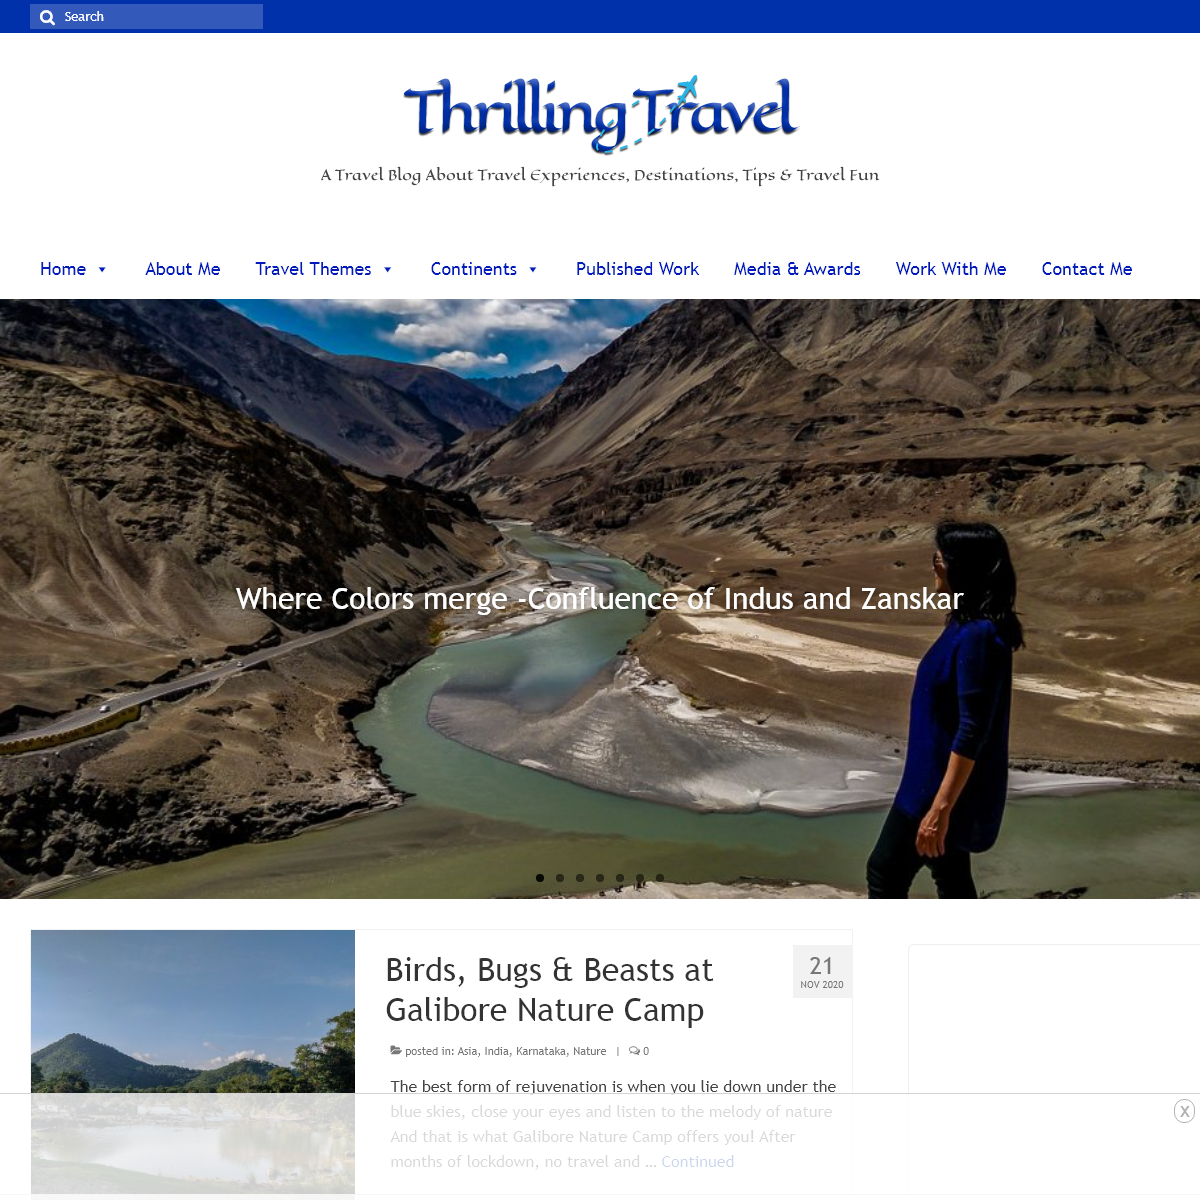 Thrilling Travel - A Travel Blog About Travel Experiences, Destinations & Tips